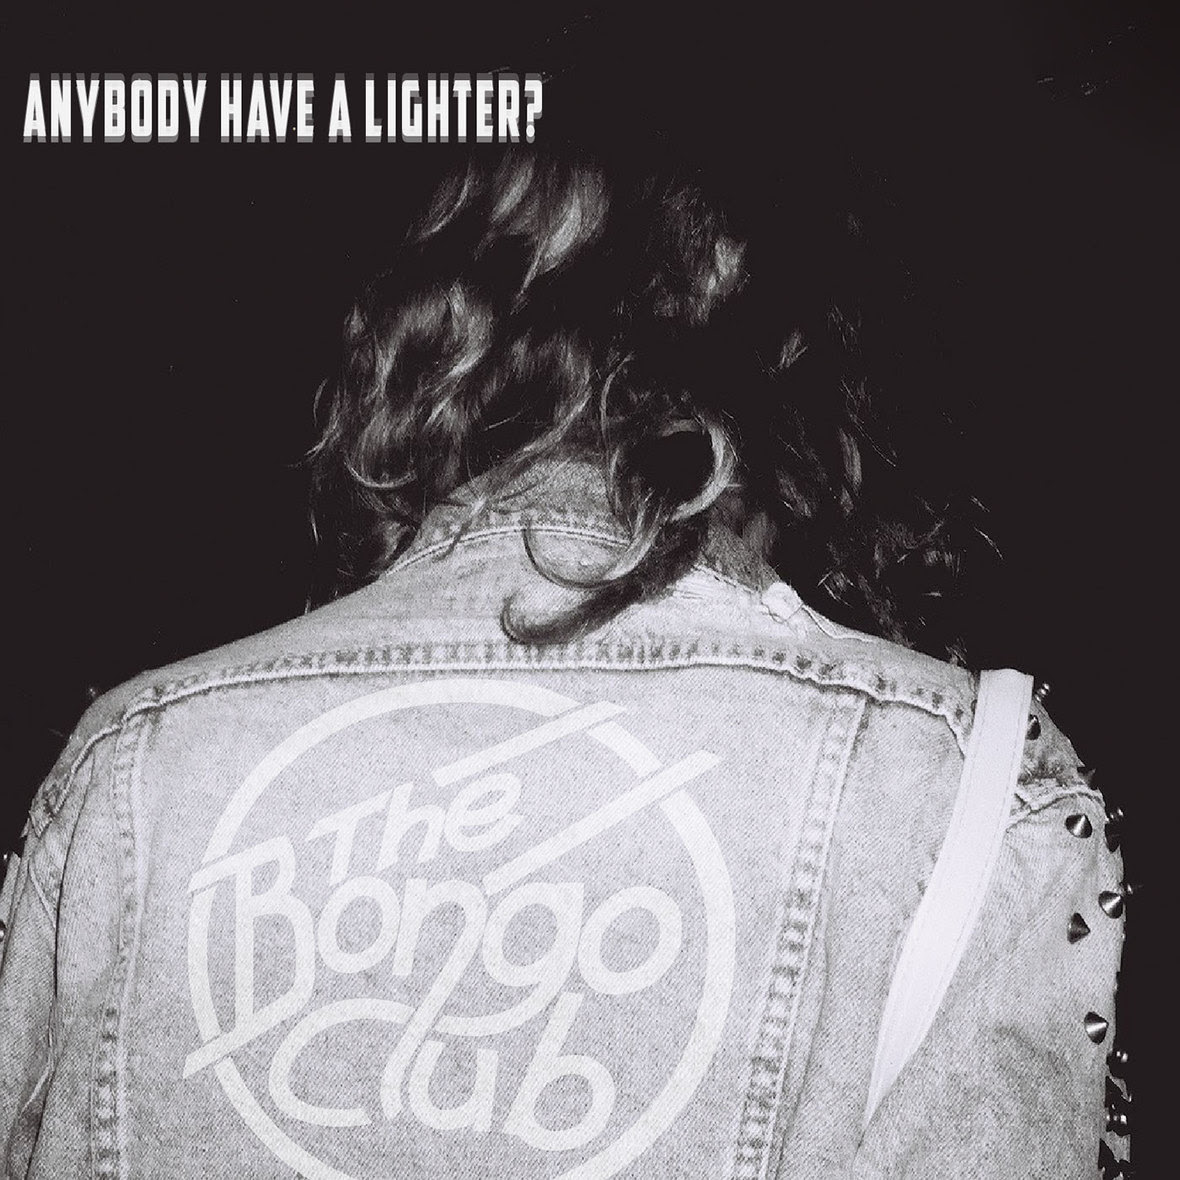 The Bongo Club - Anybody Have A Lighter